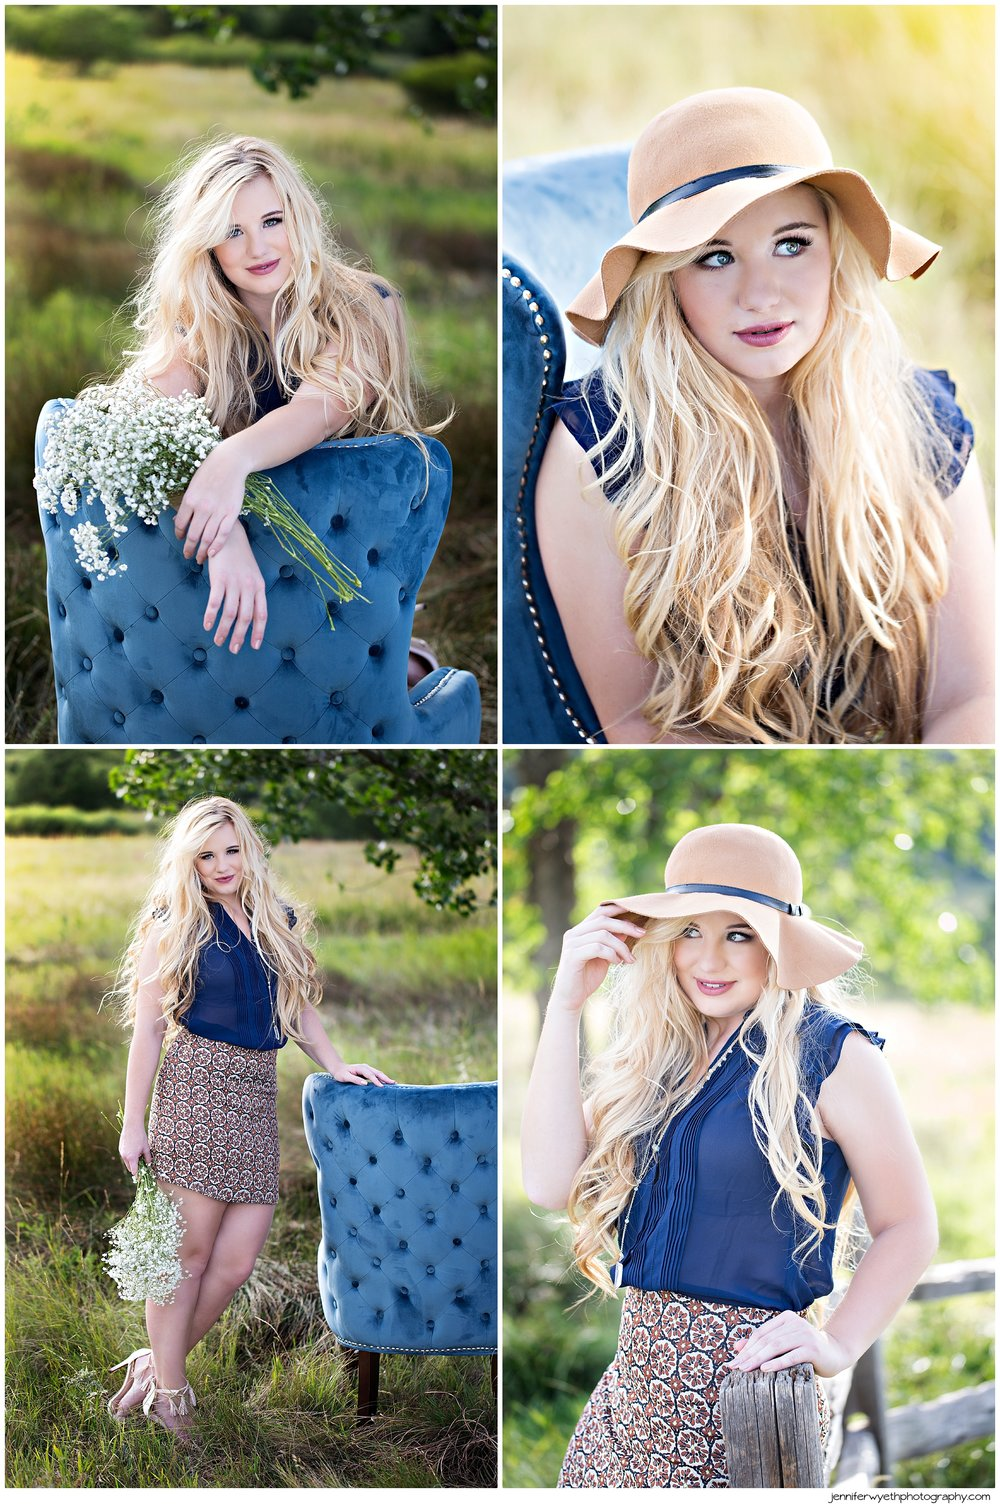 Jennifer-Wyeth-photography-senior-pictures-colorado-springs-photographer_0171.jpg